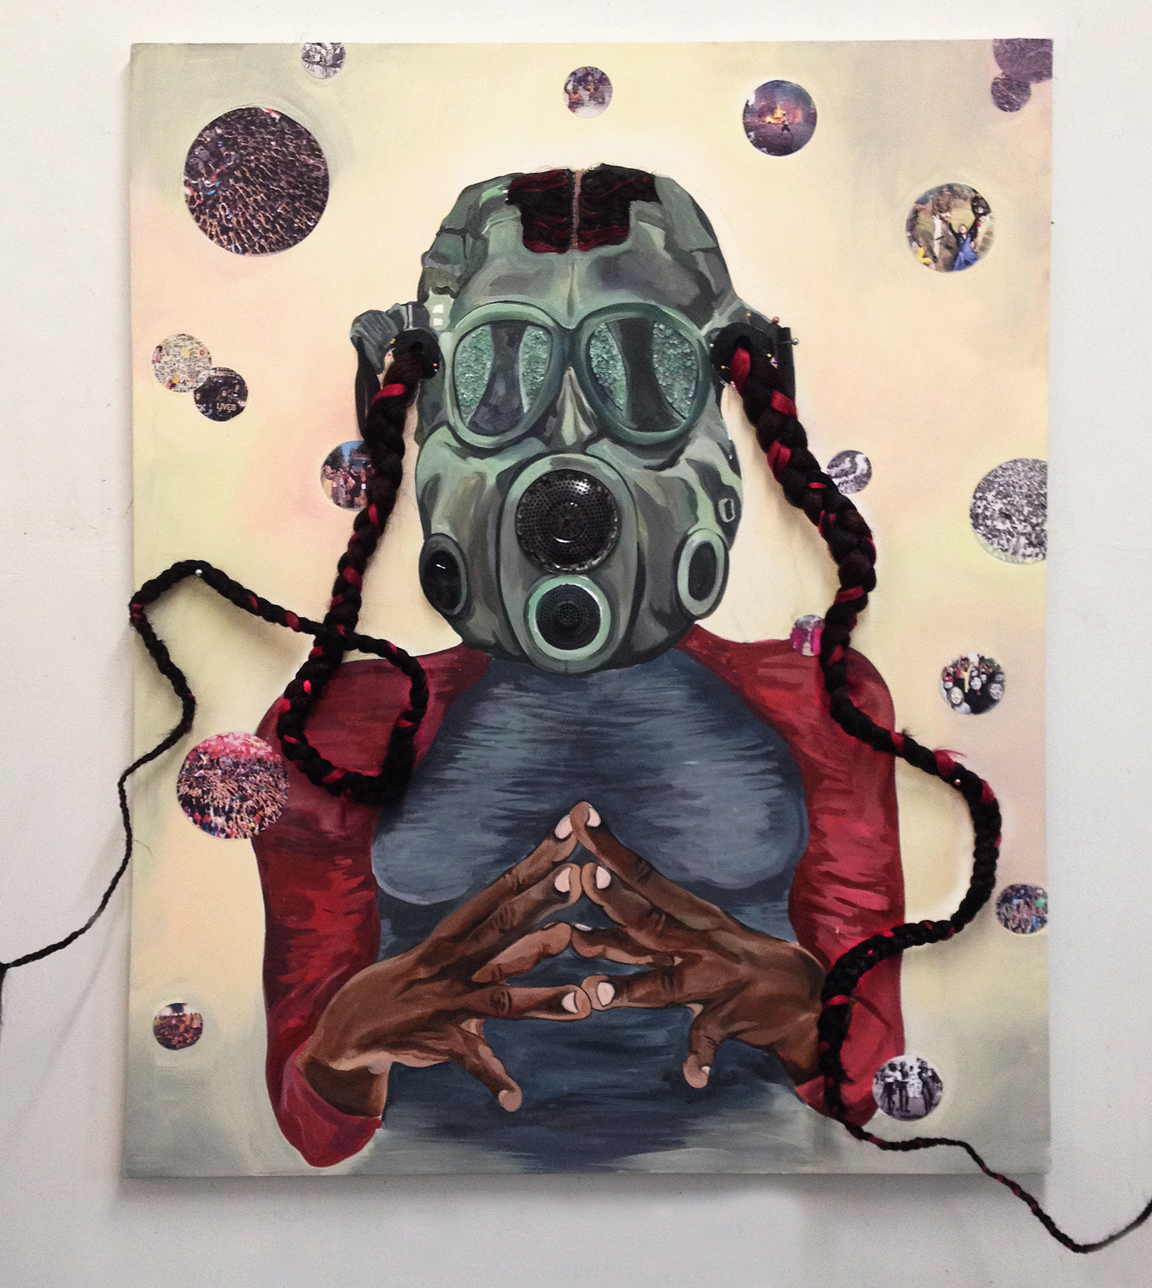 """Chitra Ganesh, """"Action Plan"""" (2015), acrylic, hair, rubber, metal (drain), digital print on canvas, 60 x 48 in (image courtesy the artist and Gallery Wendi Norris, San Francisco)"""